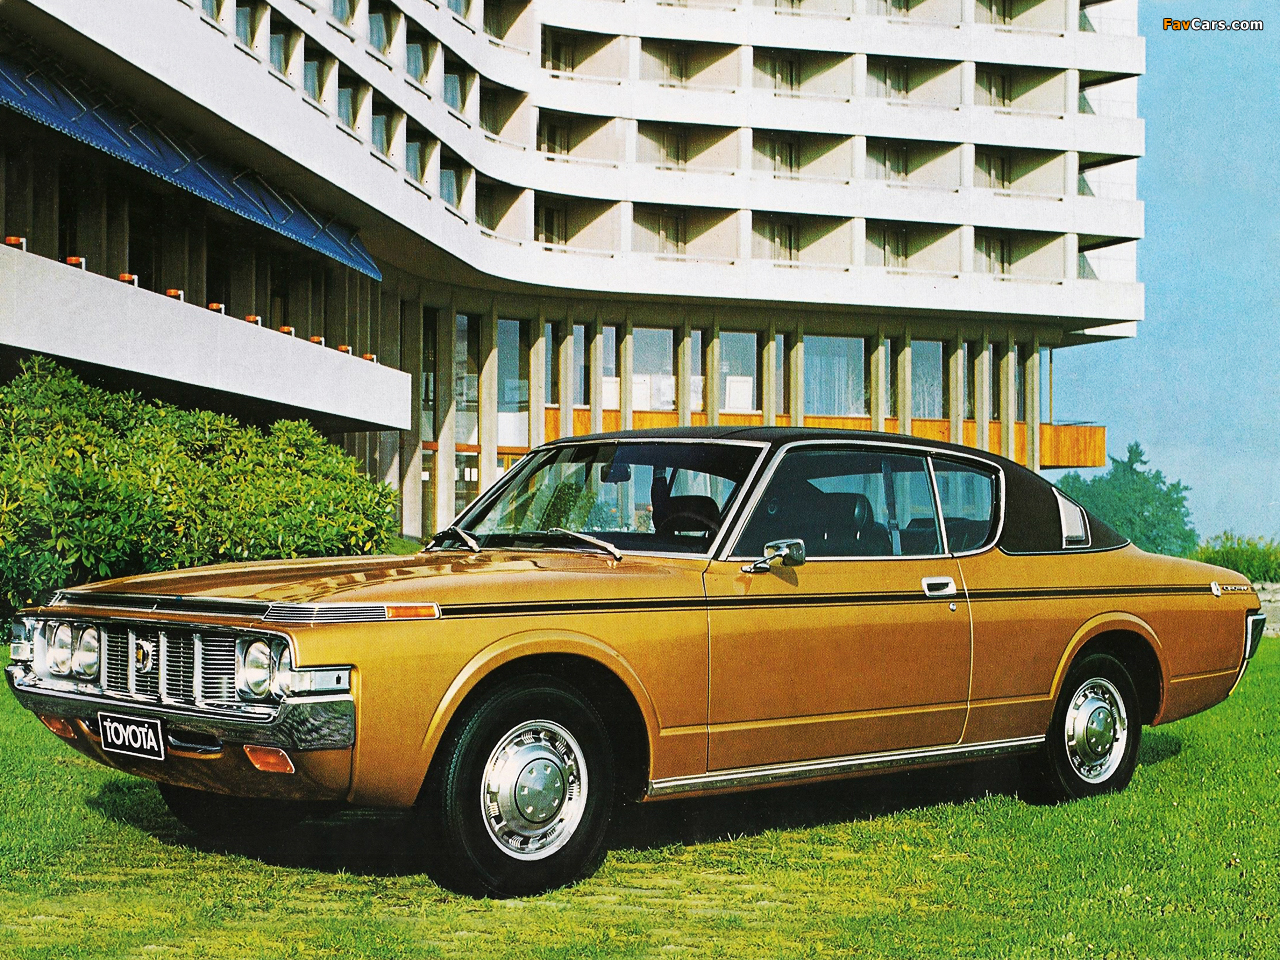 Toyota Crown Hardtop Coupe S60 S70 1971 74 Images 1280x960